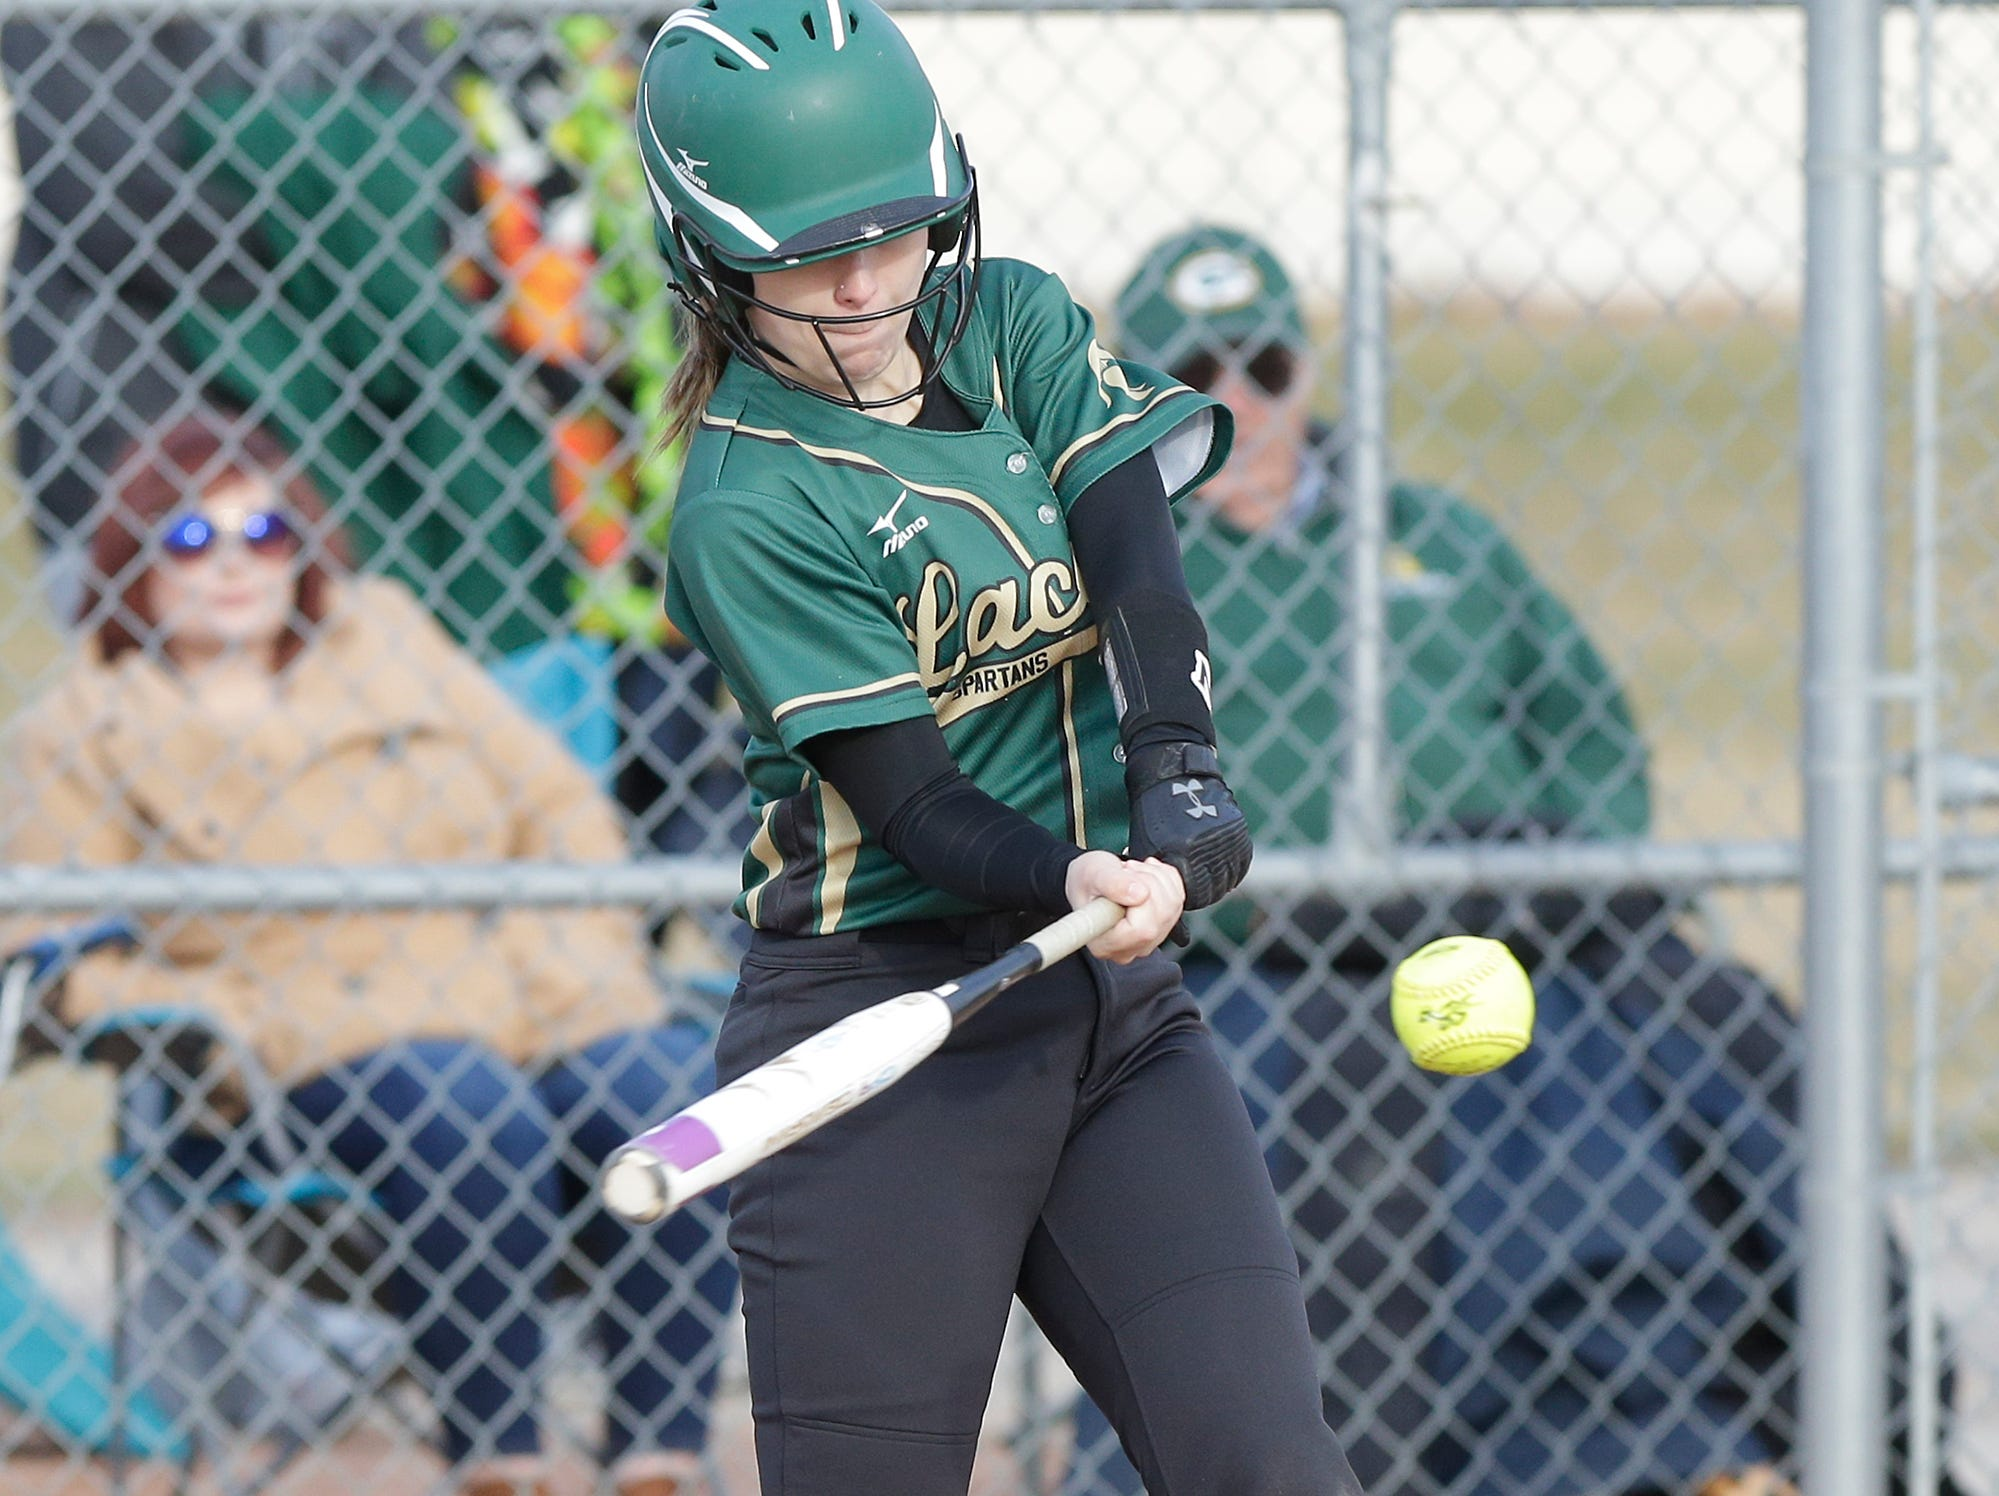 Laconia High School softball's Kaysie Smith swings at a pitch against Winnebago Lutheran Academy April 9, 2019 during their game in Fond du Lac, Wis. Laconia won the game 25-9. Doug Raflik/USA TODAY NETWORK-Wisconsin